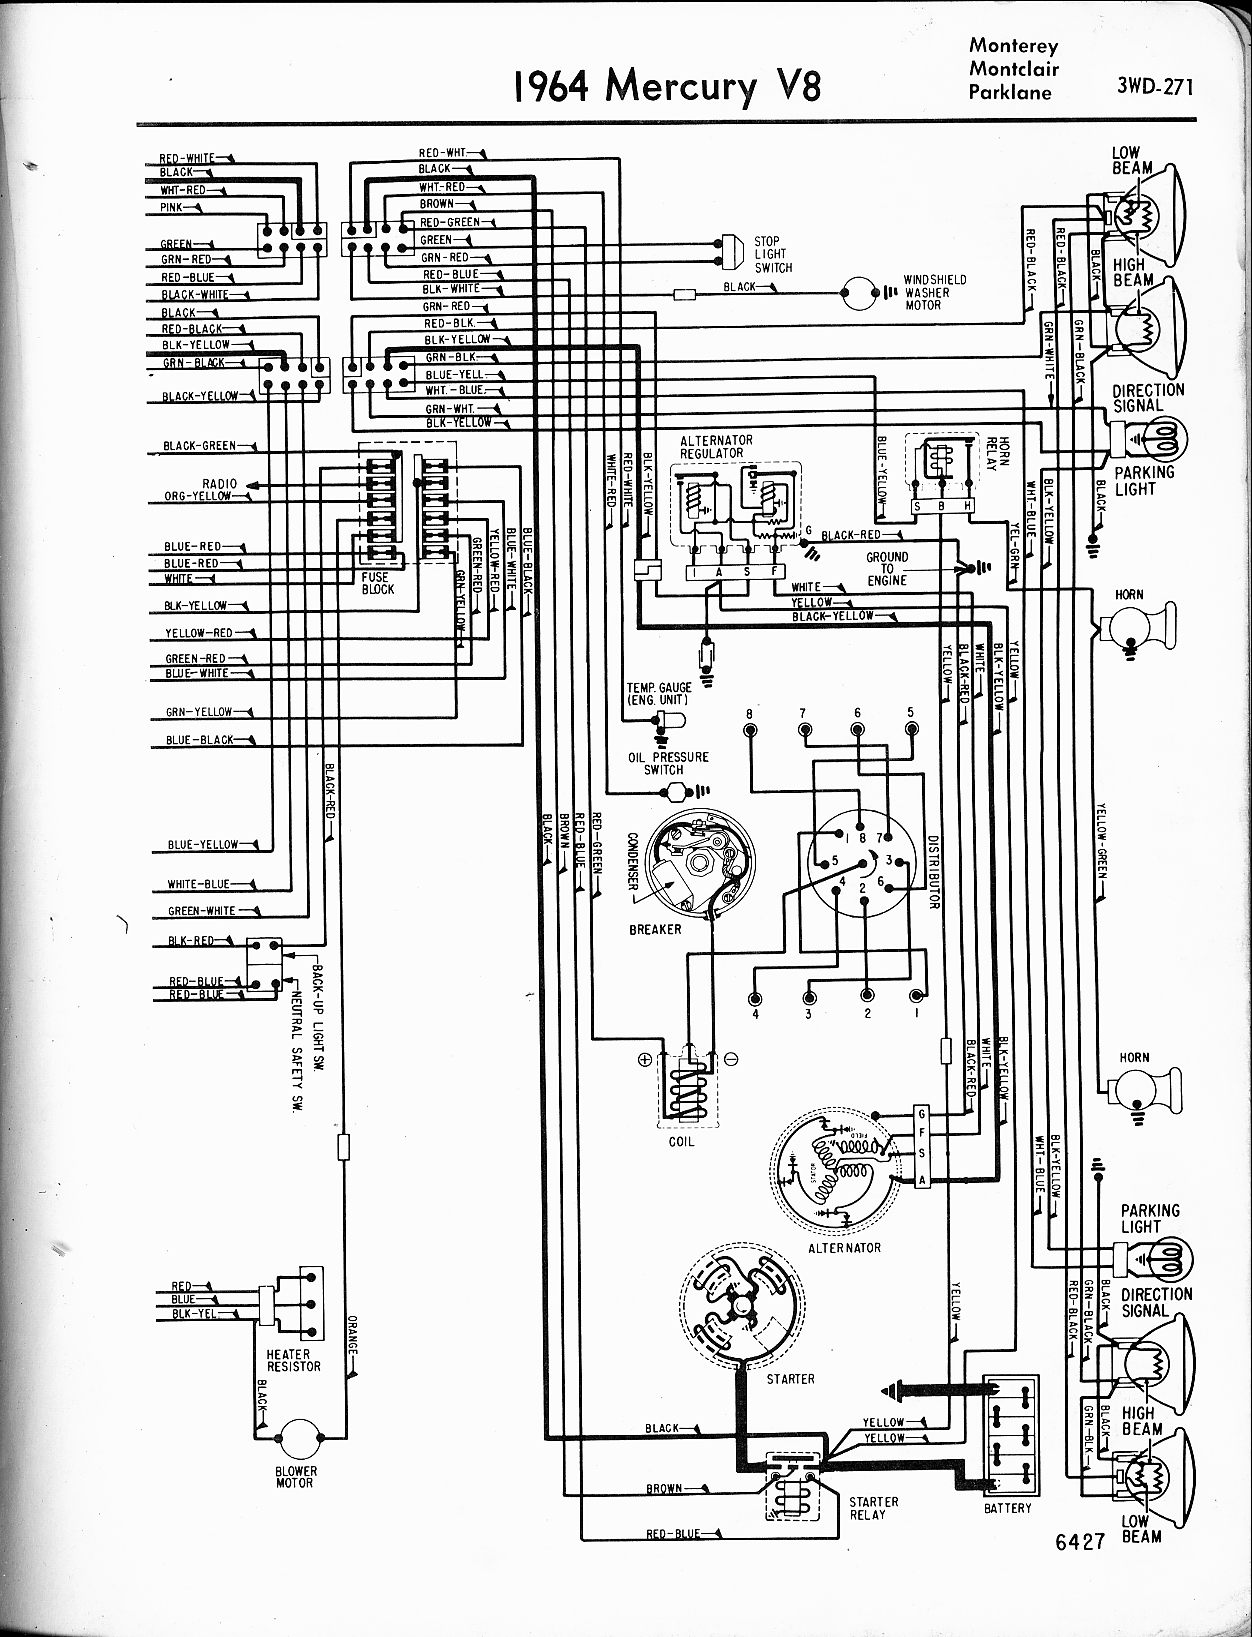 1964 wiring diagram wiring diagram for impala the wiring diagram mercury wiring diagrams the old car manual project 1964 v8 monterey montclair parklane right page